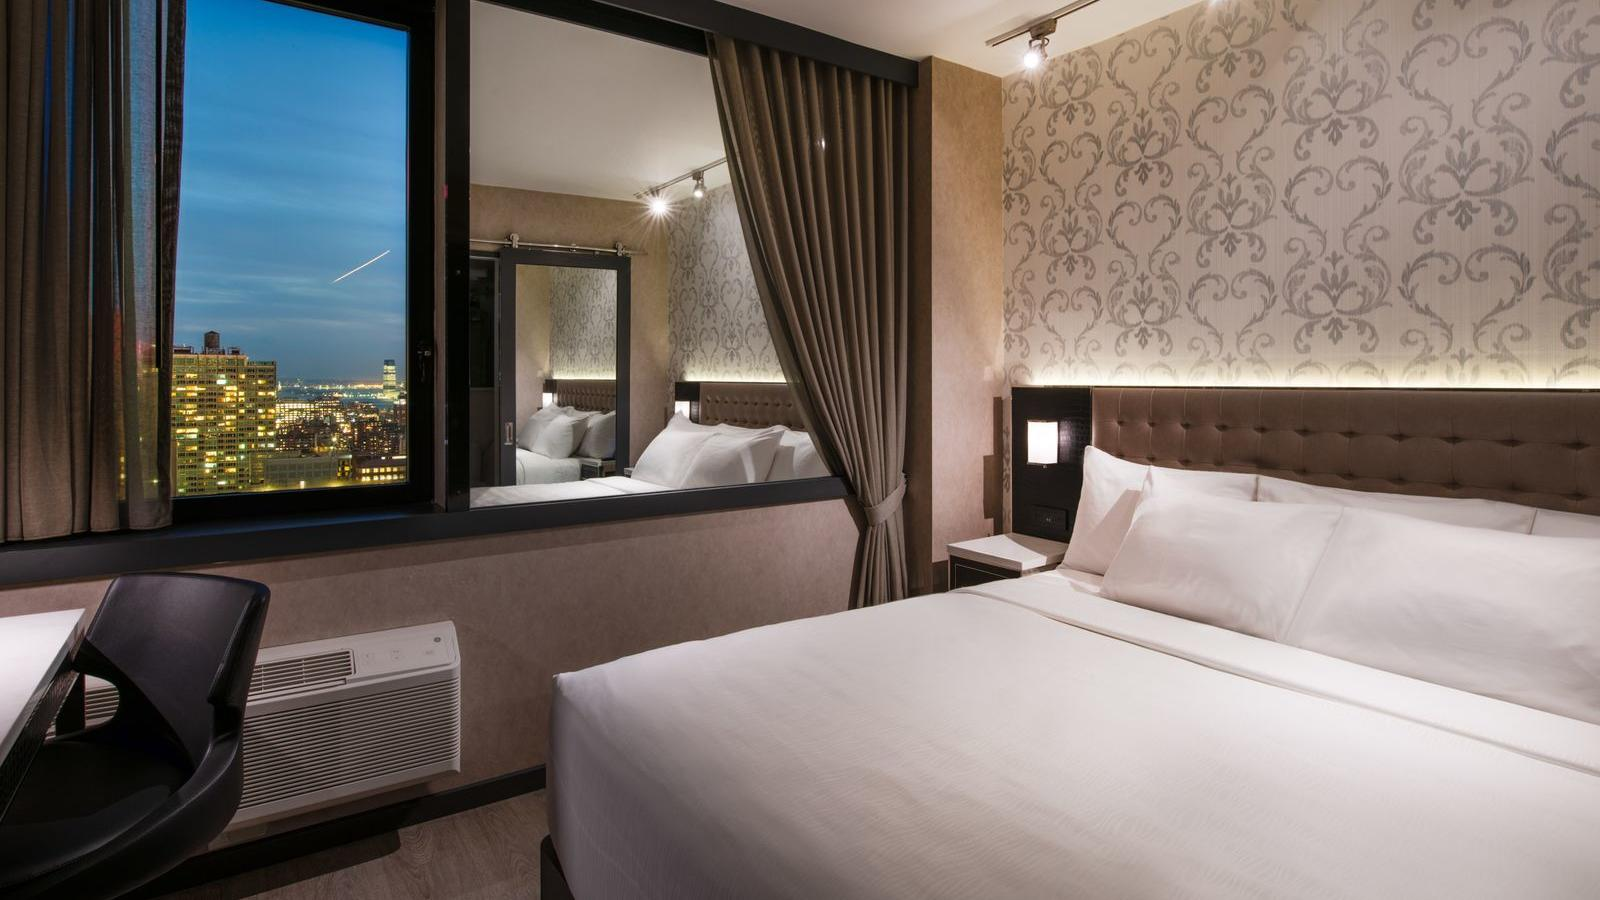 Deluxe hotel room with King bed.